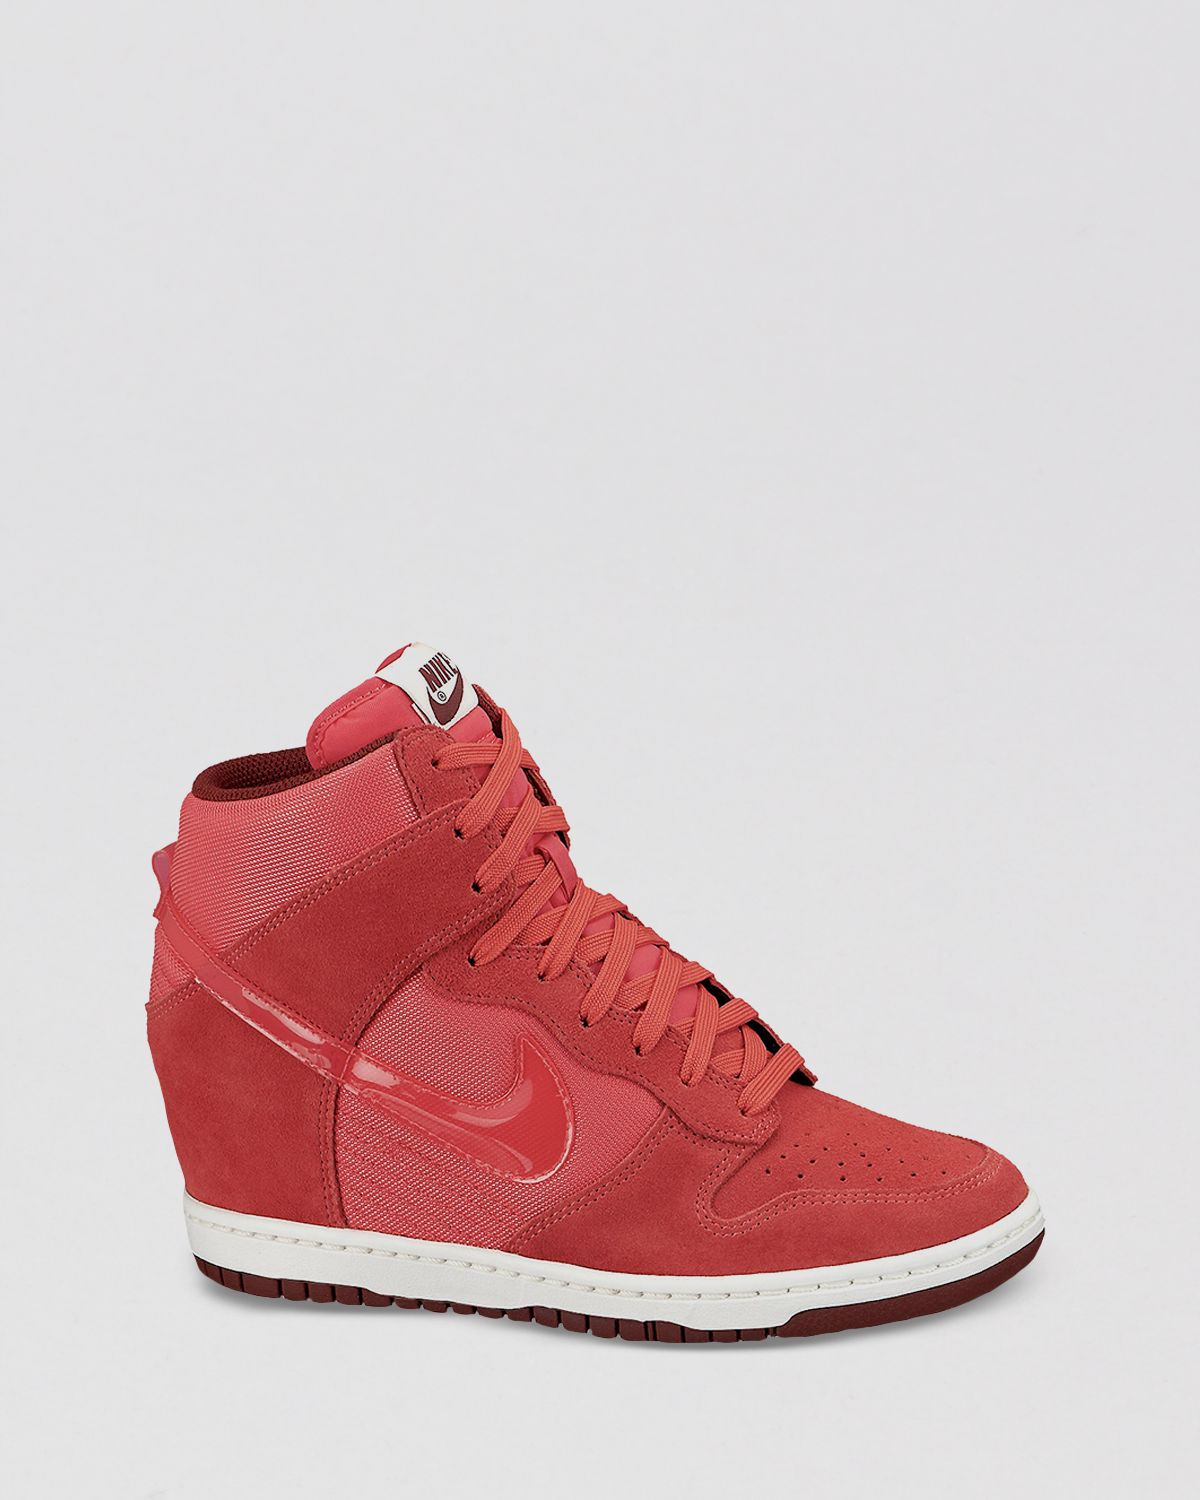 Lyst - Nike Lace Up High Top Wedge Sneakers Womens Dunk Sky Hi ... 3484056cd